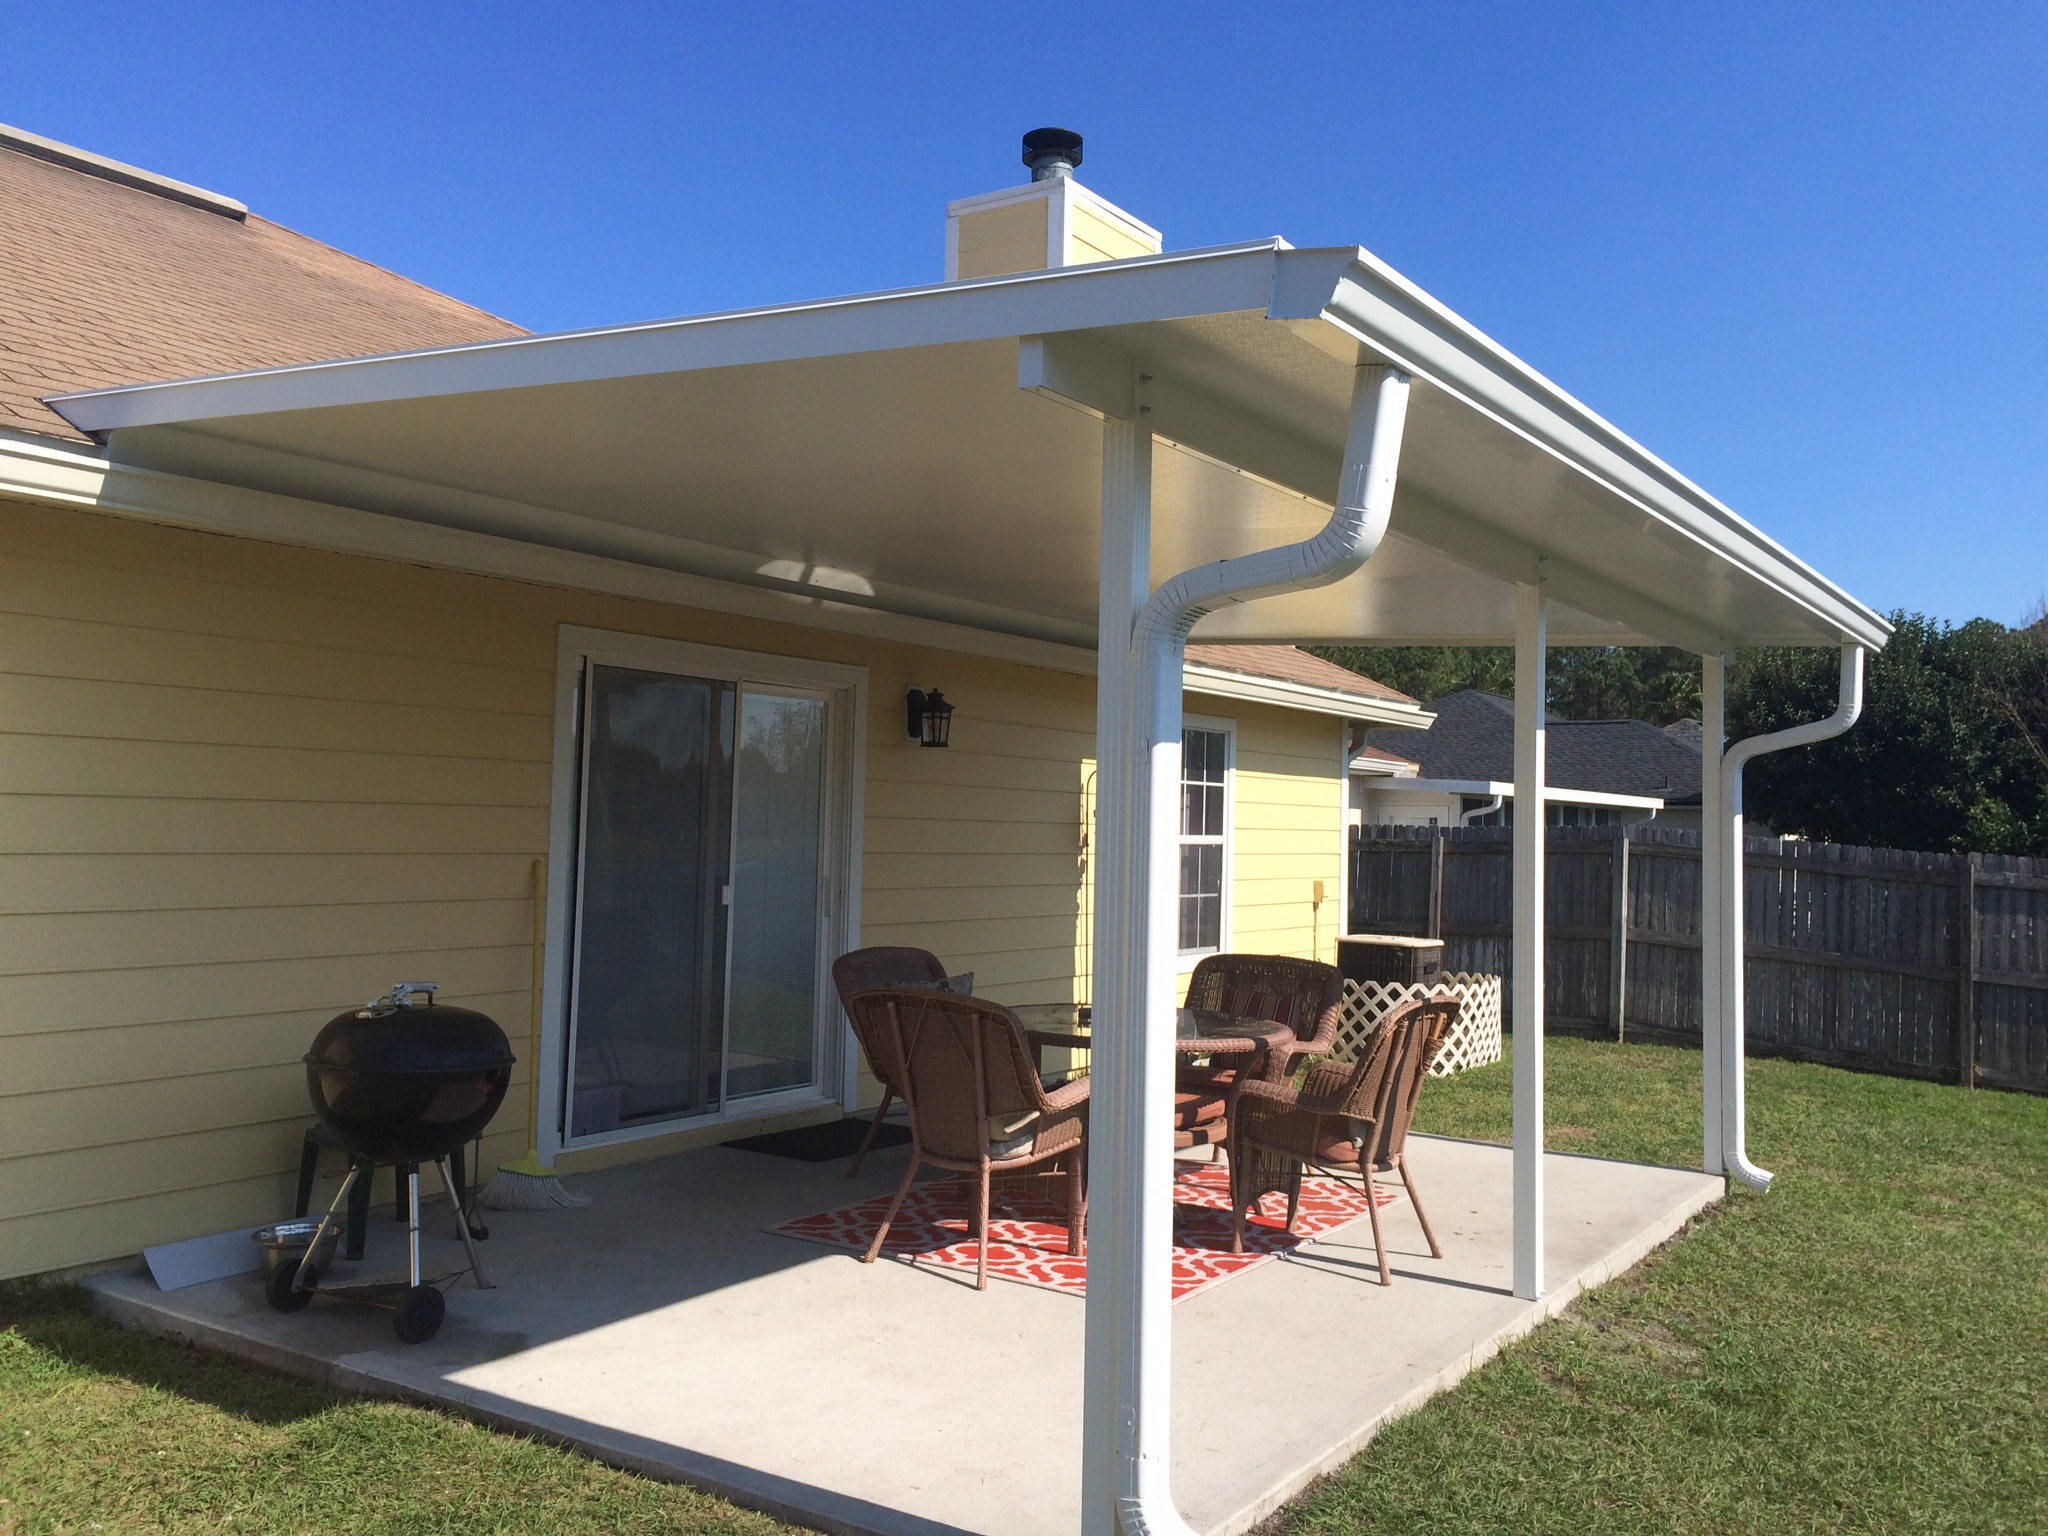 Patio Covers Amp Carport Roofs Gallery M Daigle Amp Sons